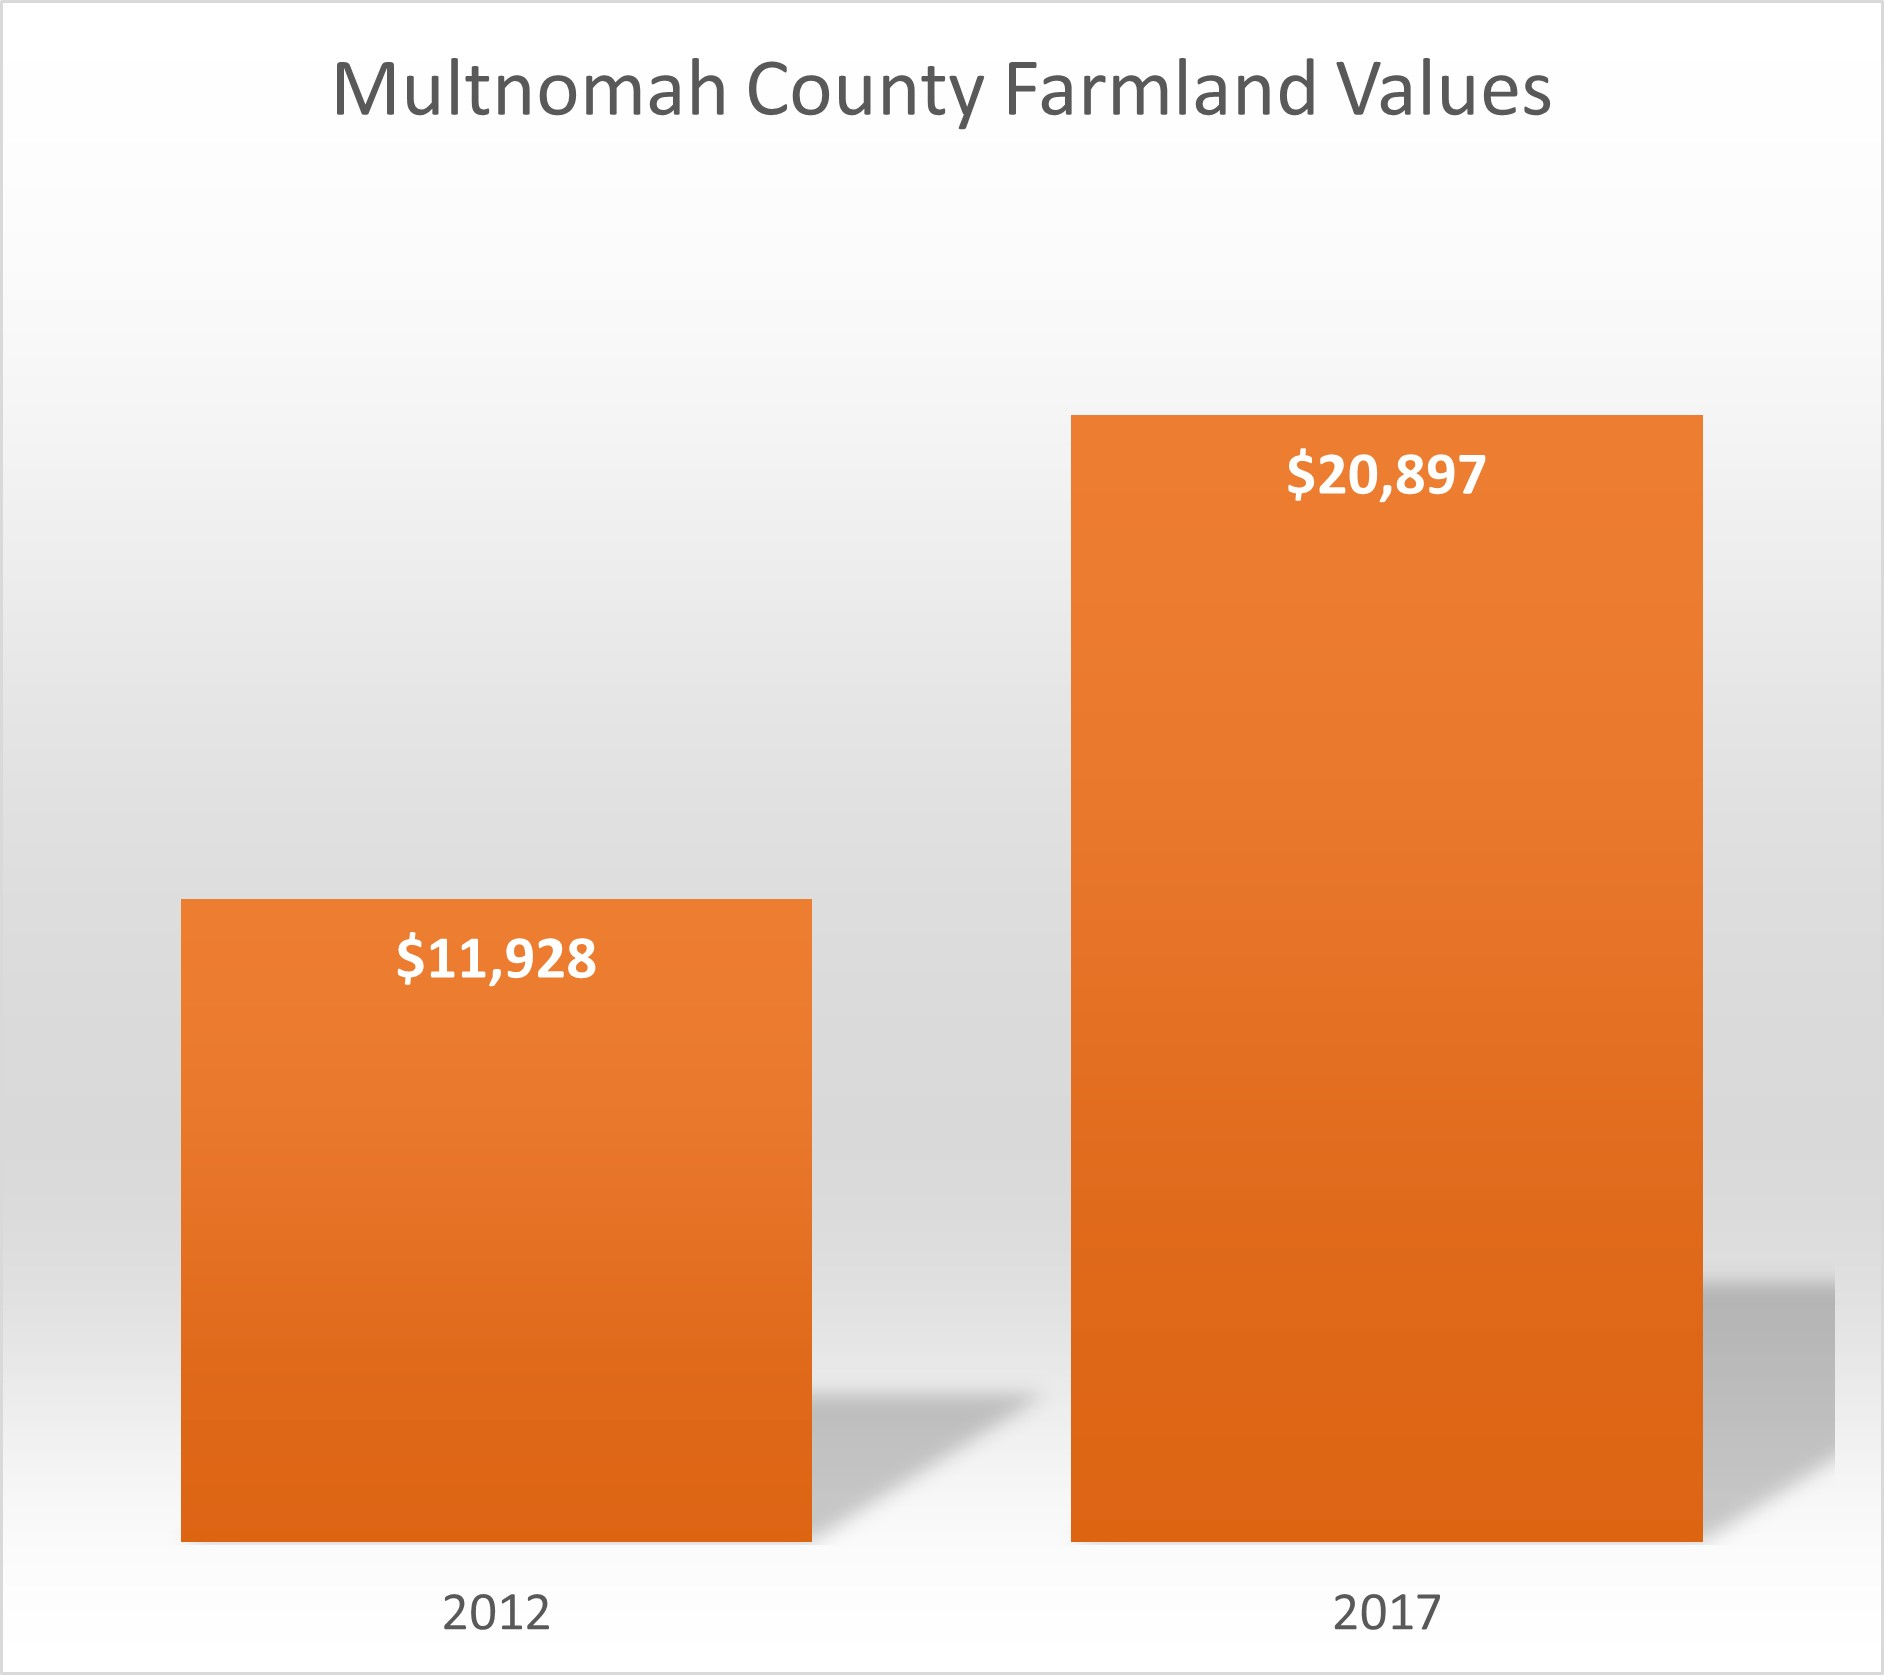 two-element bar graph showing farmland values per acre increasing from 2012 to 2017 in Multnomah County